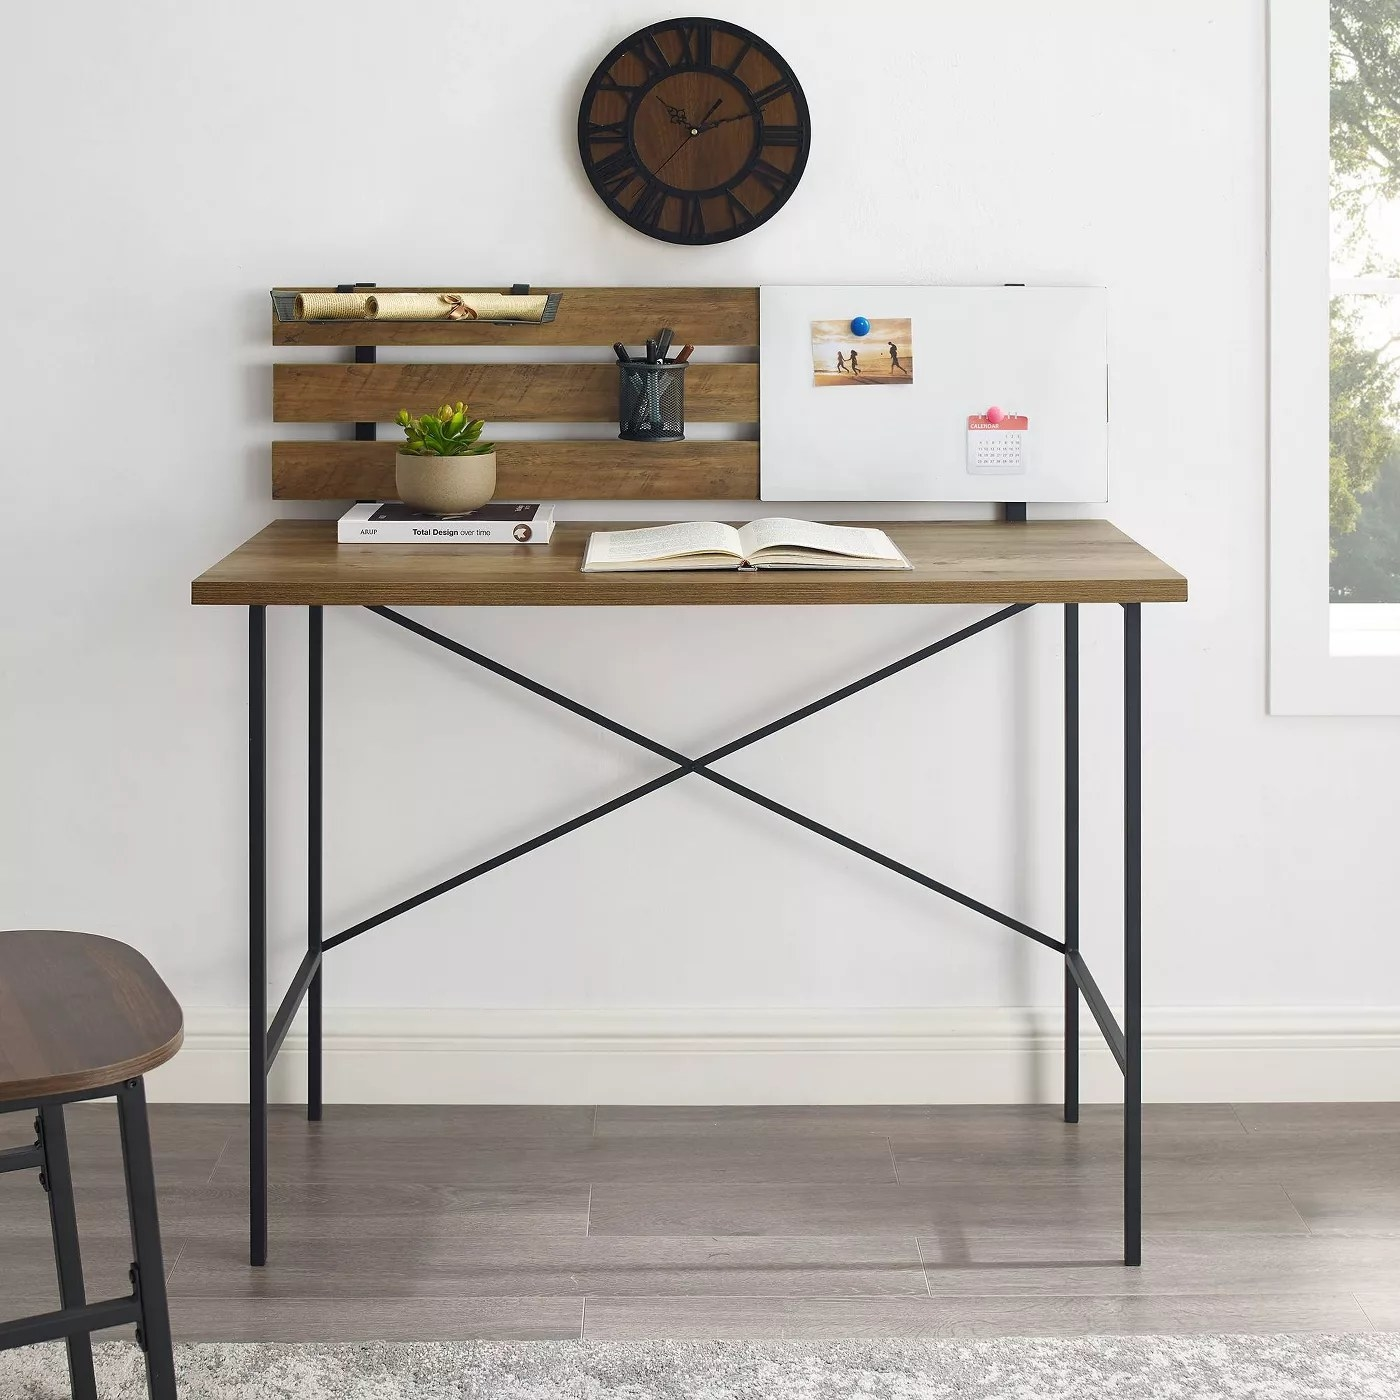 The wooden desk with a black, steel frame